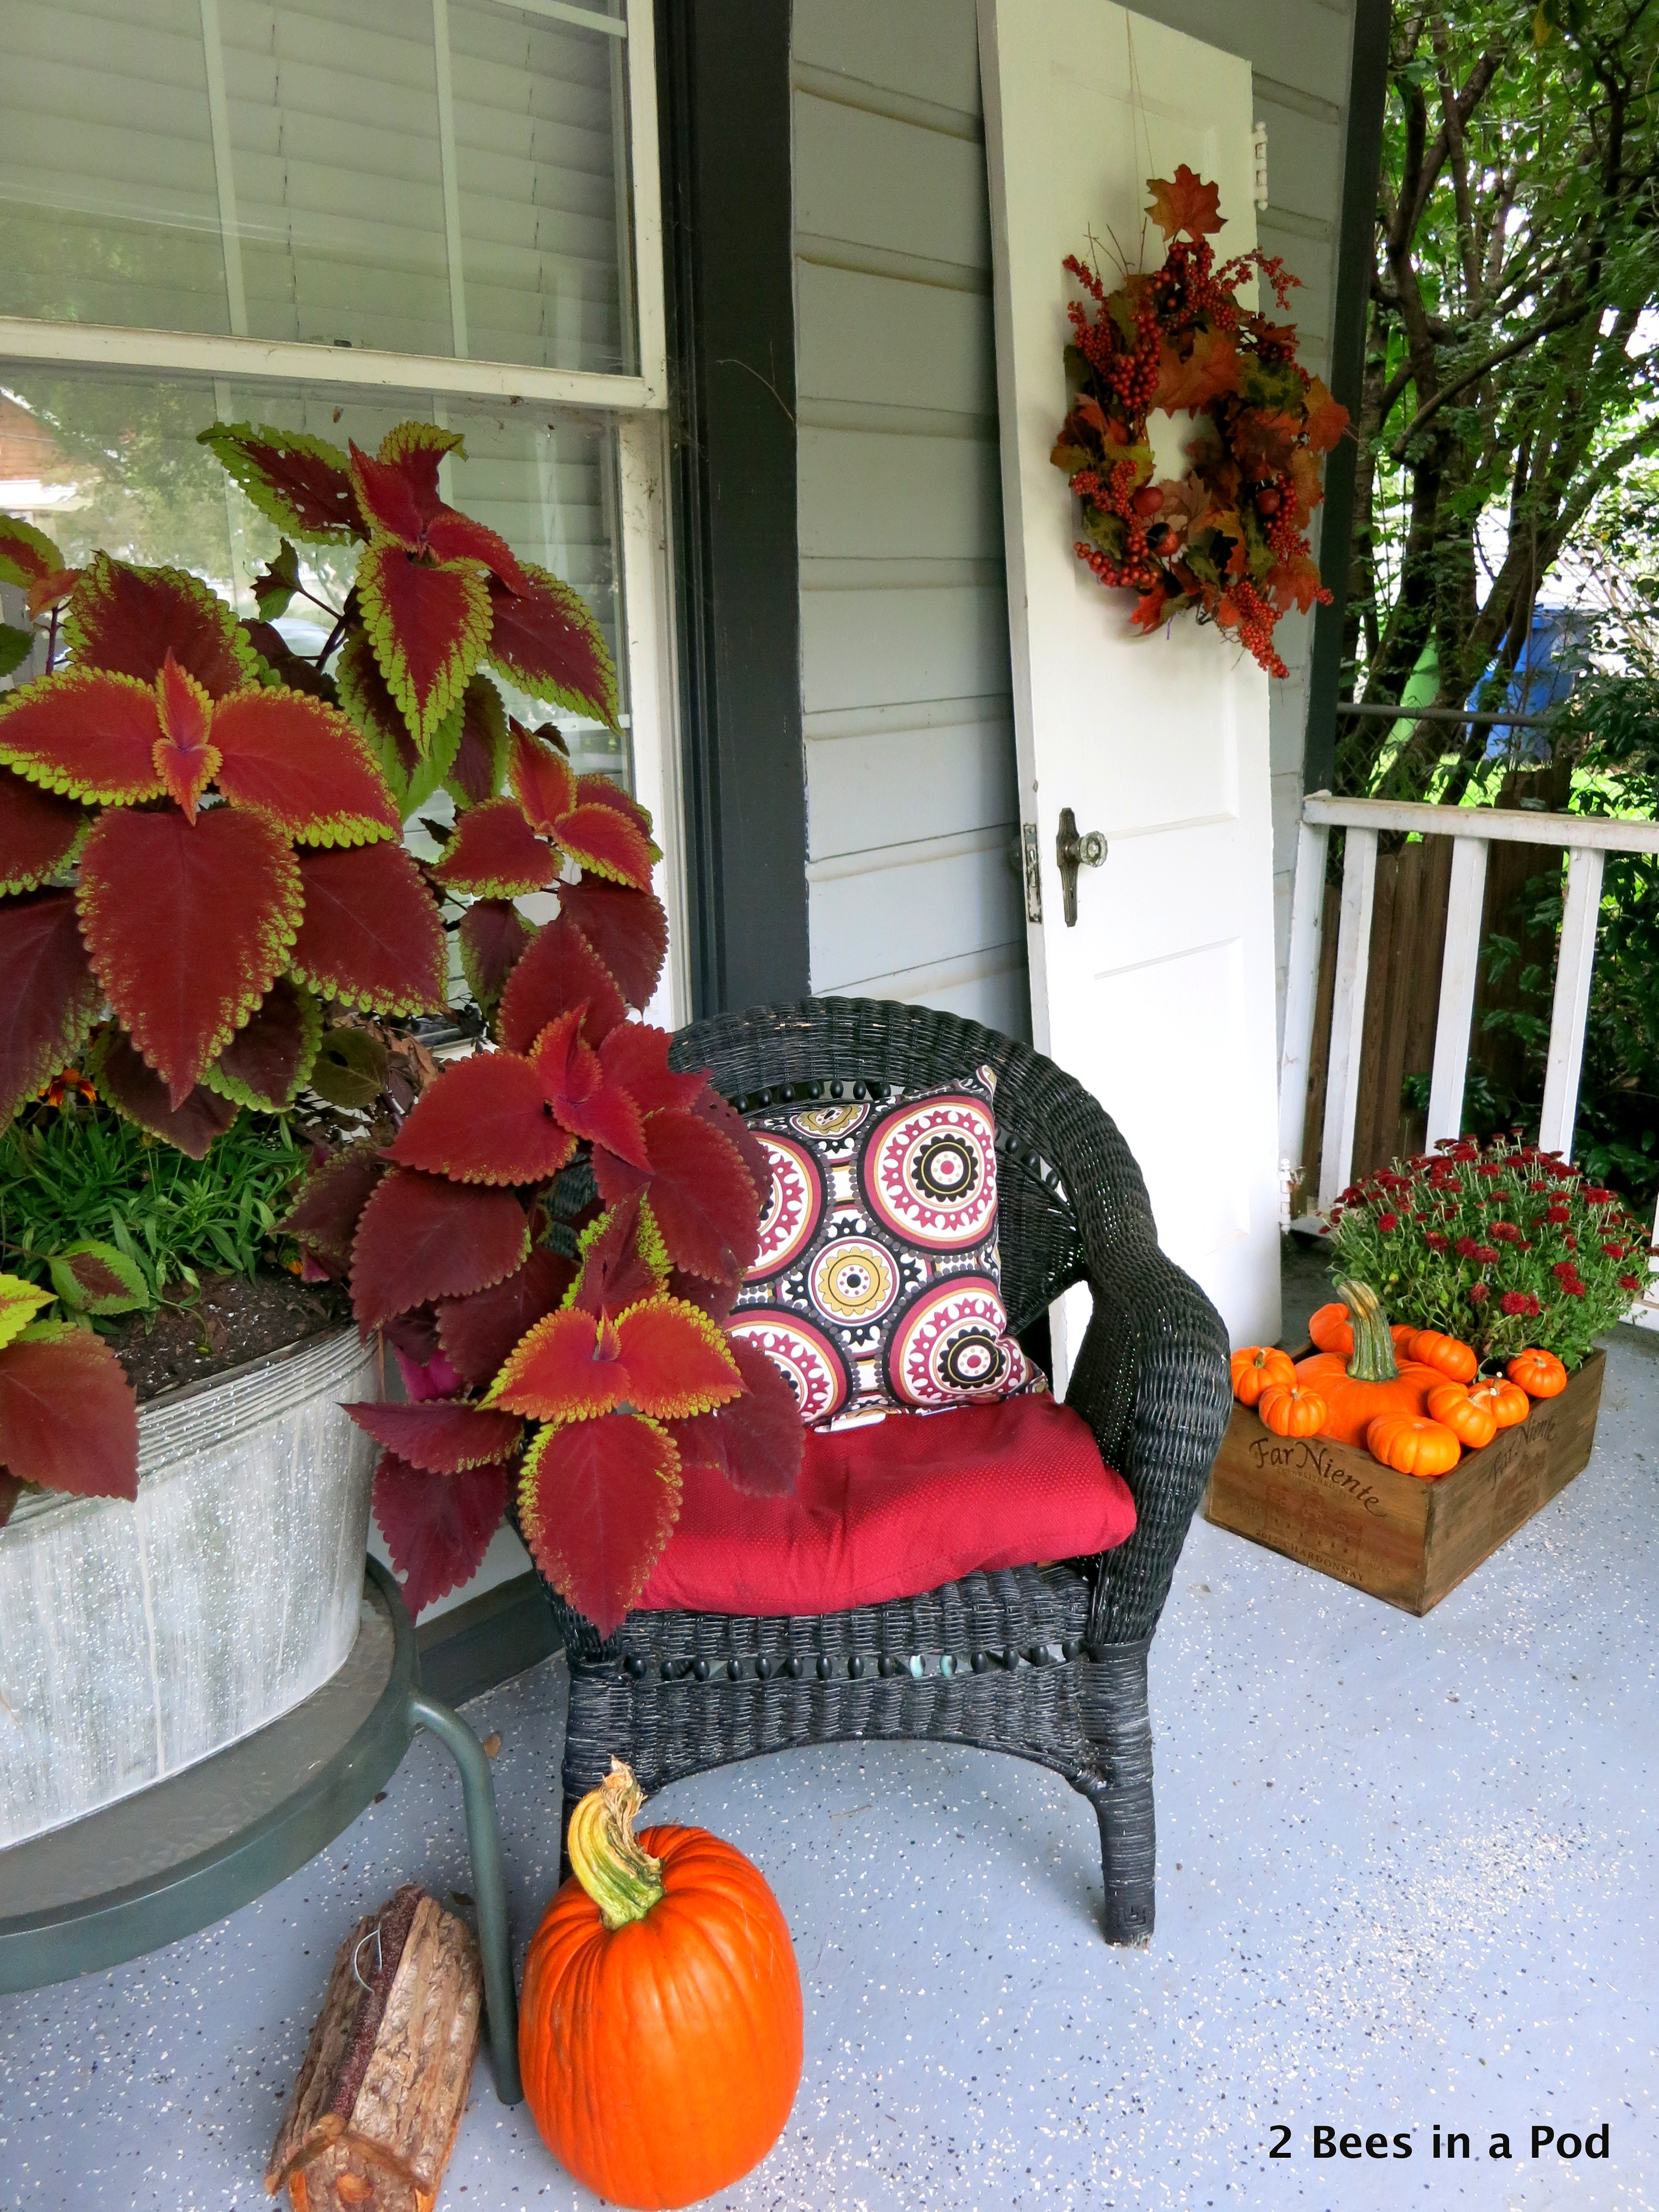 Fall Front Porch decor with mums, pumpkins, galvanized planter, hanging baskets, kale, wreath, vintage door, rustic birdhouse